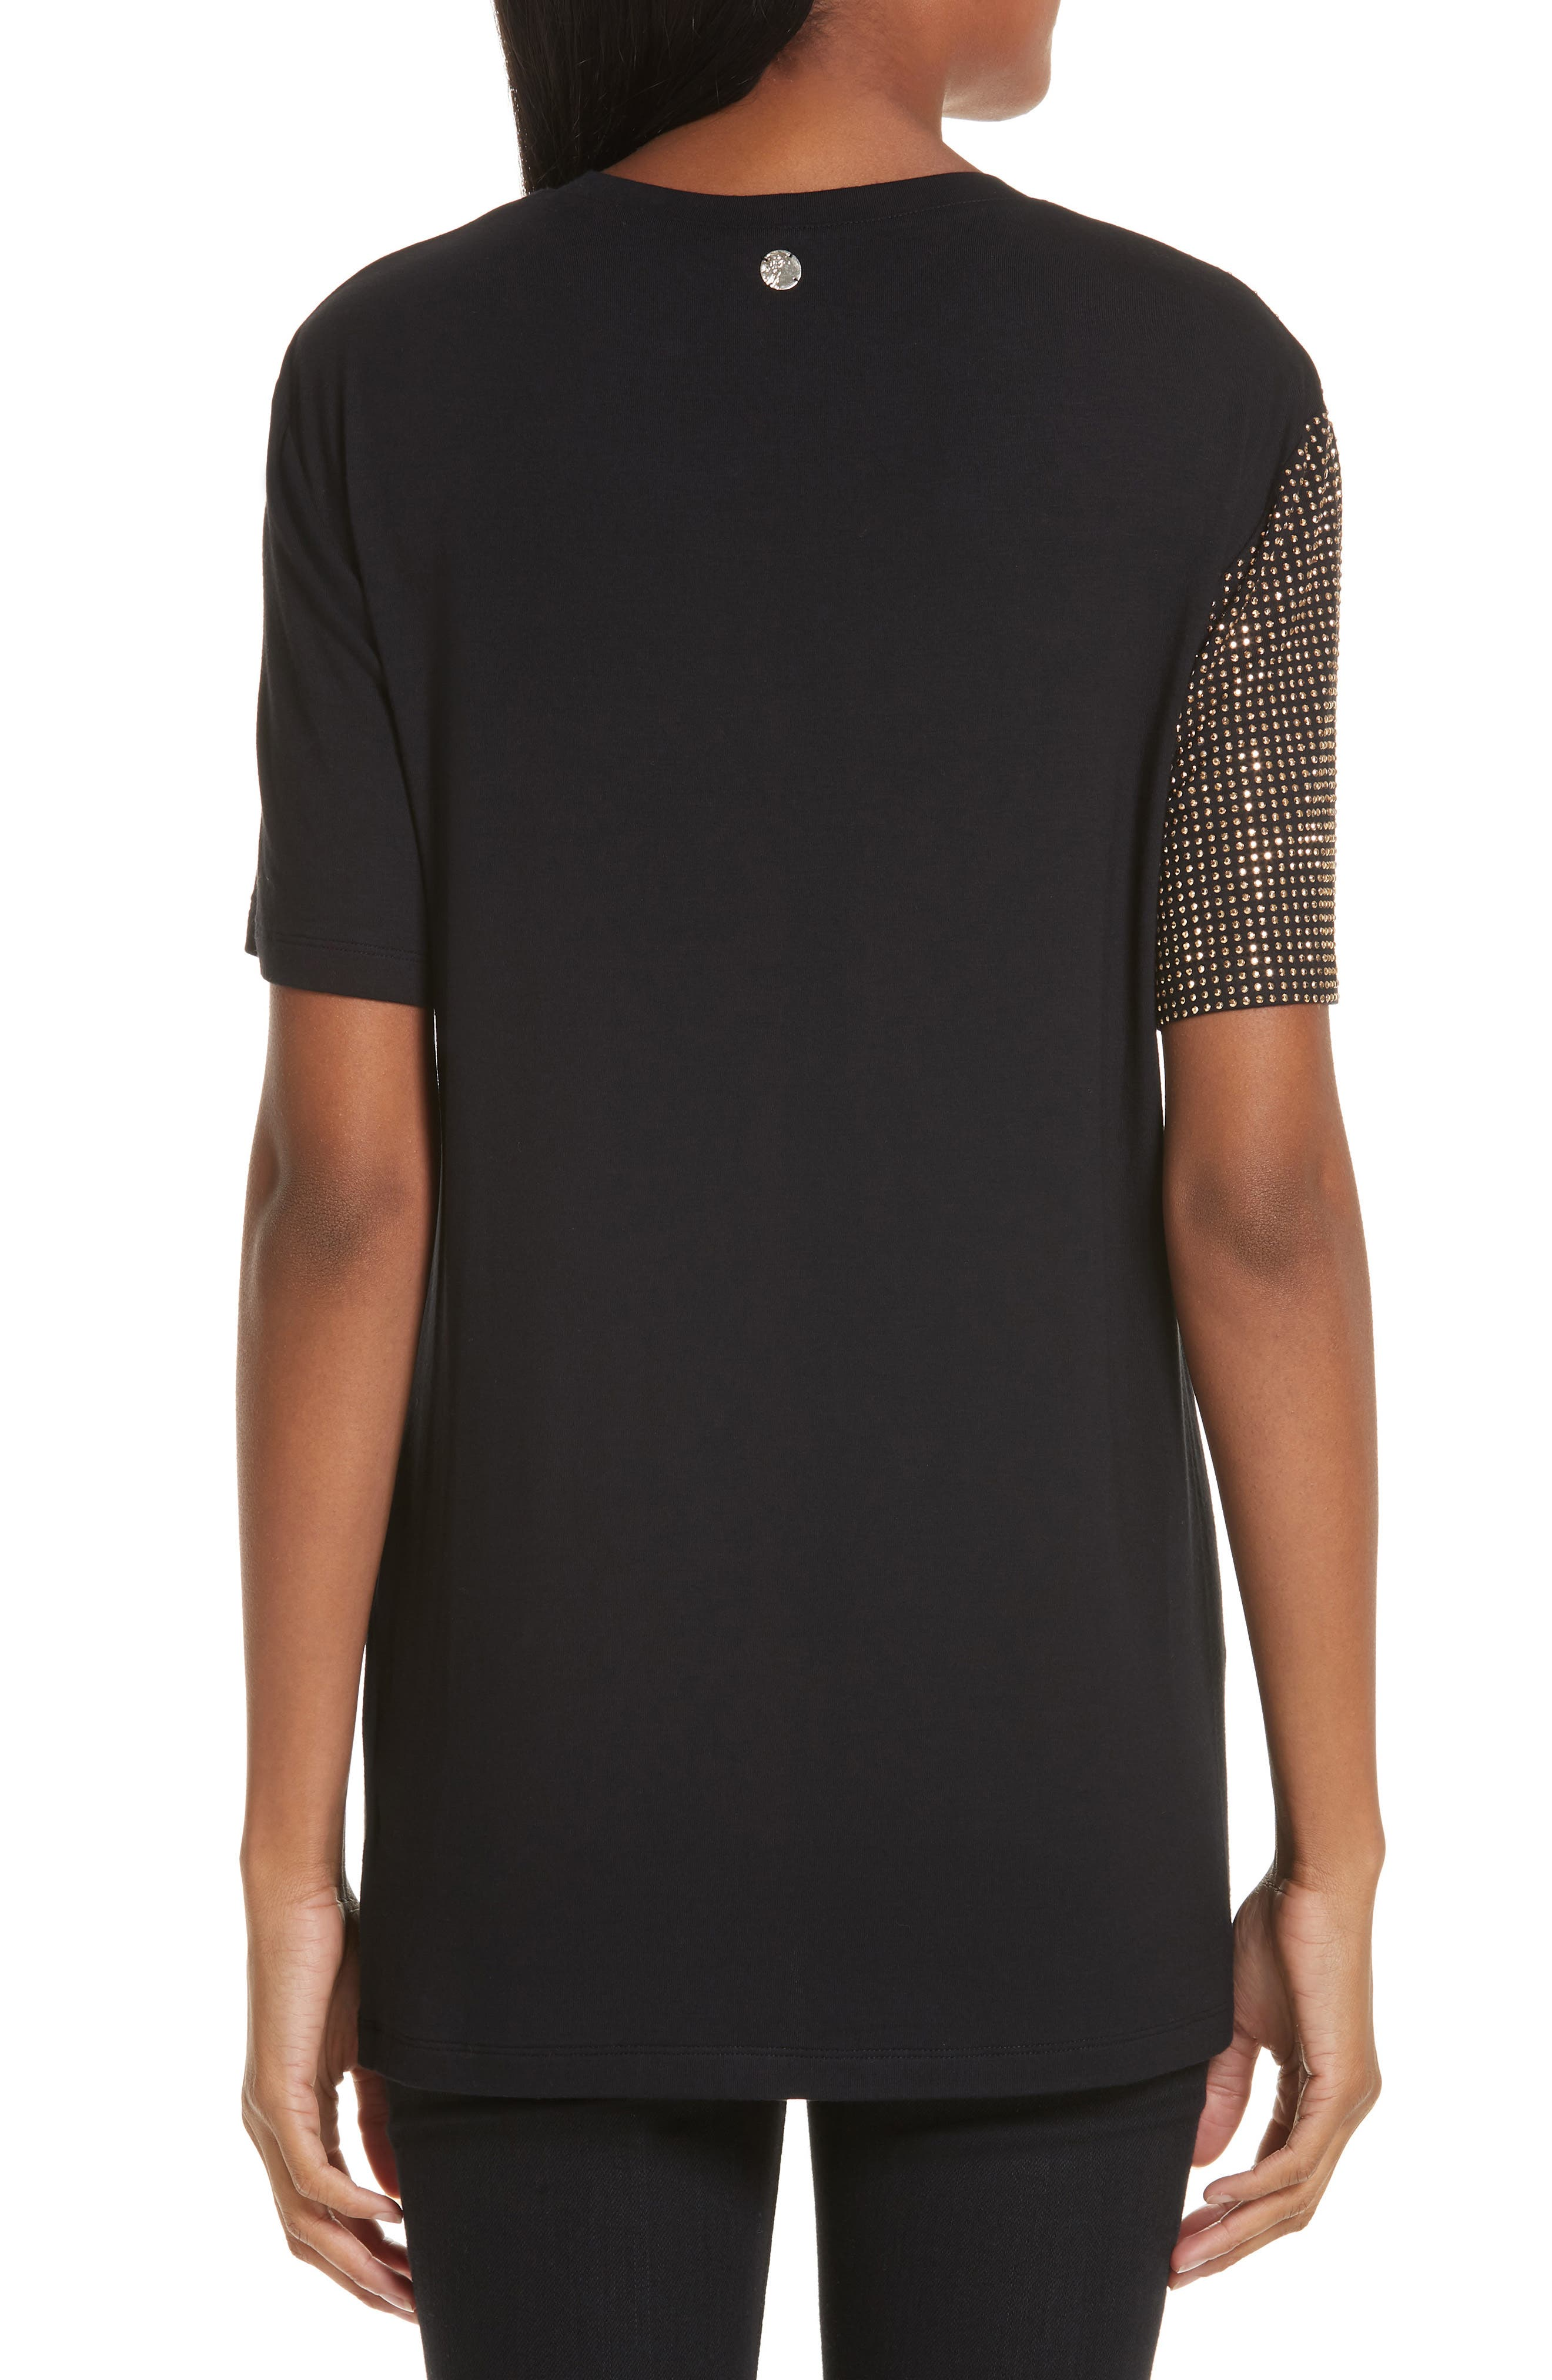 VERSACE COLLECTION, Embellished Tee, Alternate thumbnail 2, color, BLACK